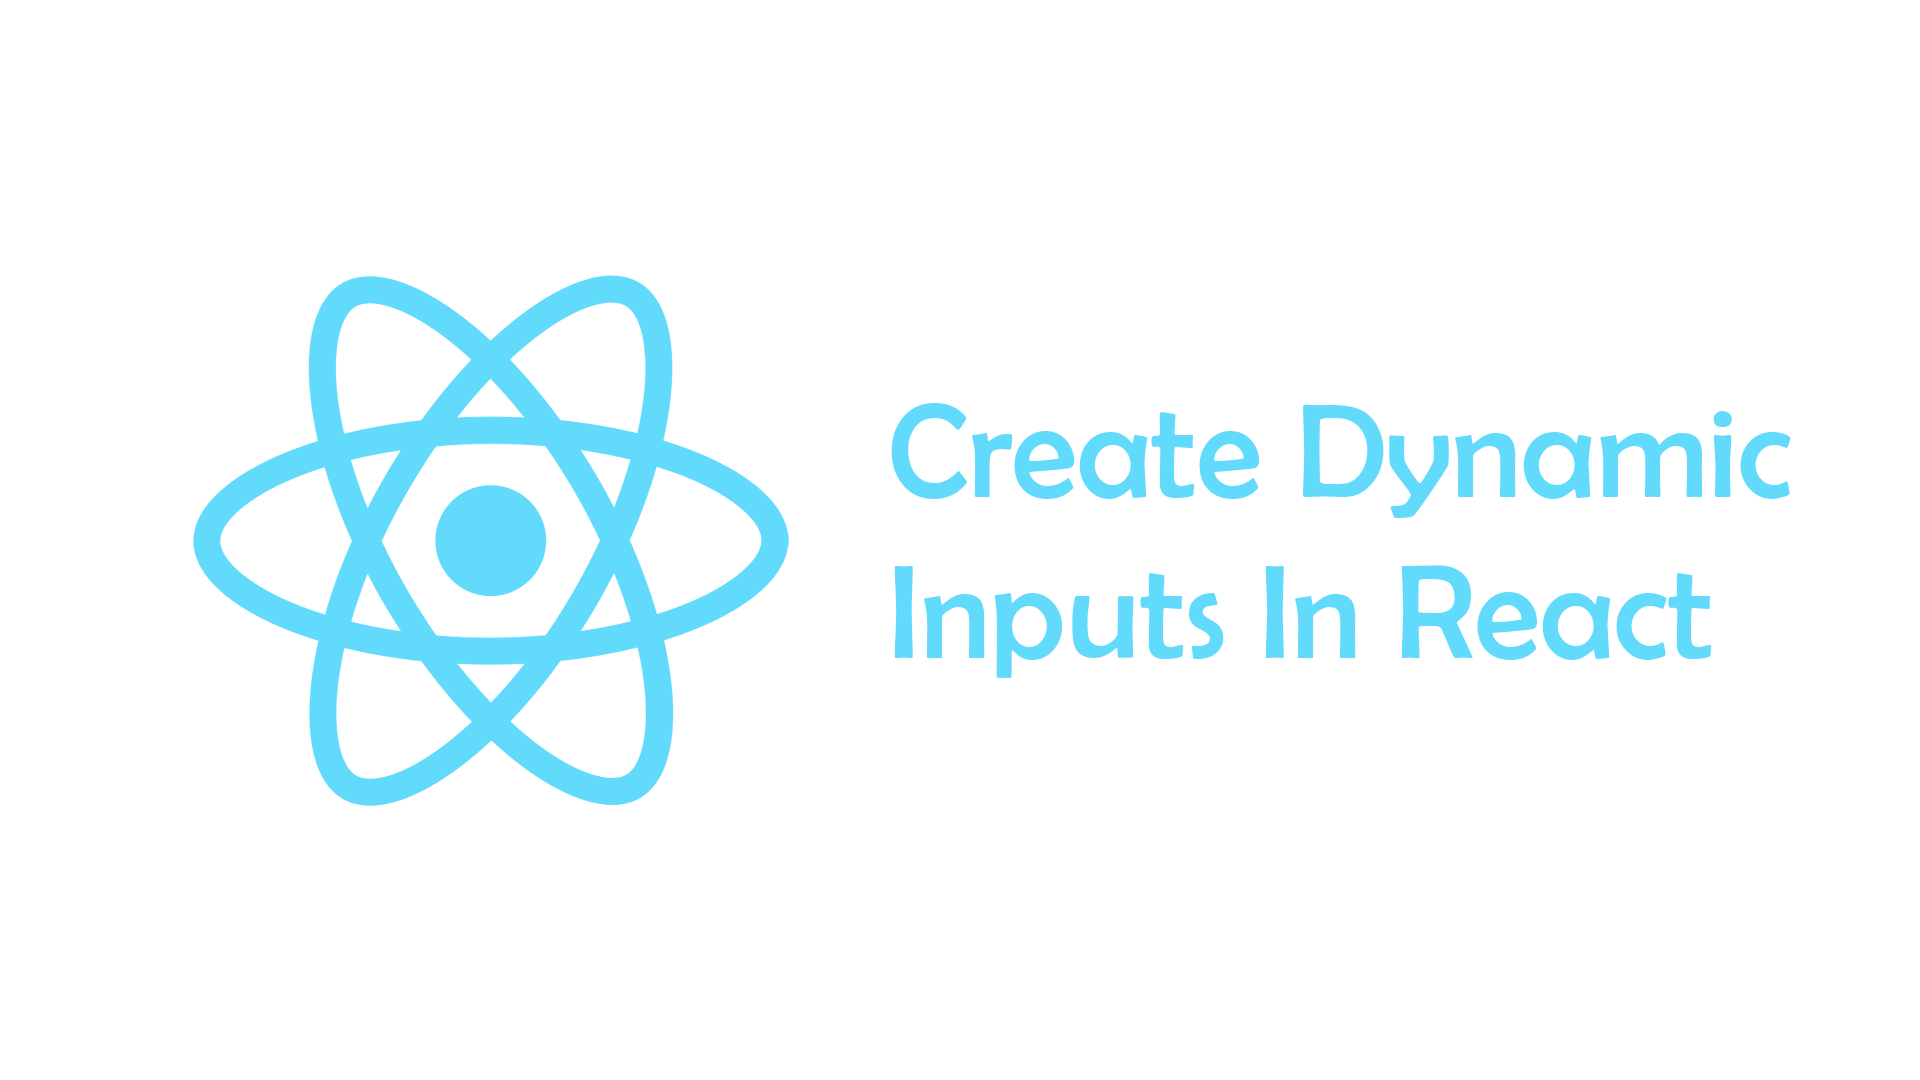 How to create dynamic inputs in react